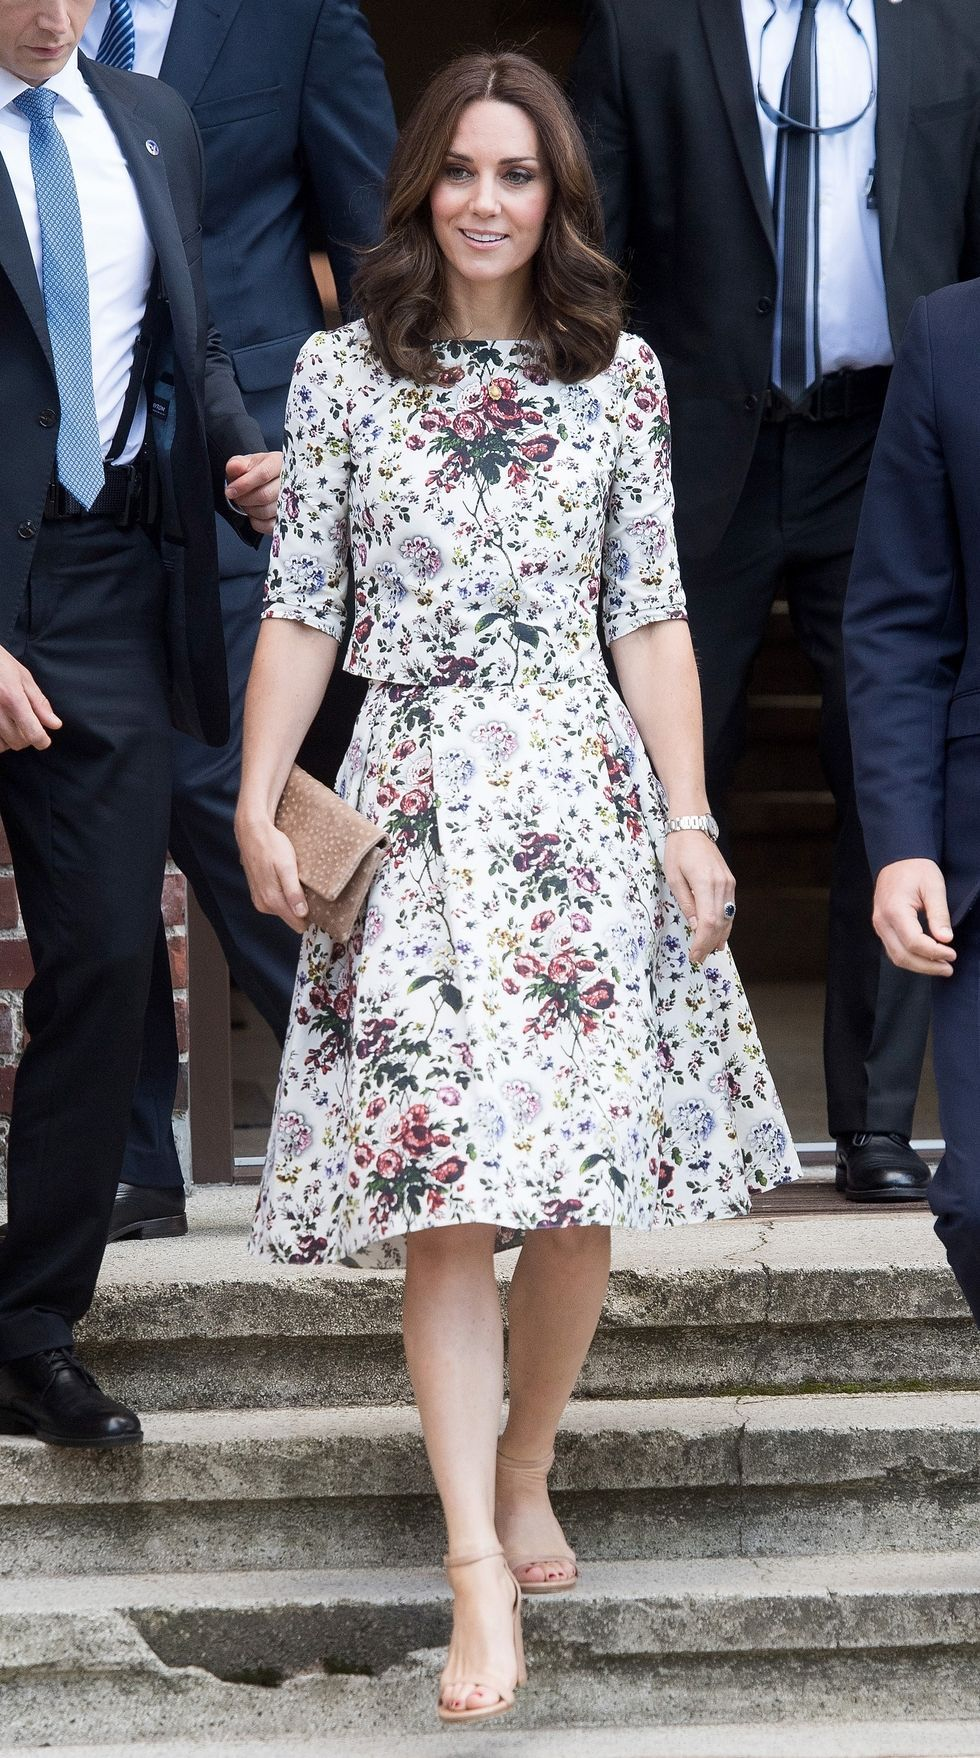 b54c87fe2b Kate Middleton's Best Style Moments - The Duchess of Cambridge's Most  Fashionable Outfits